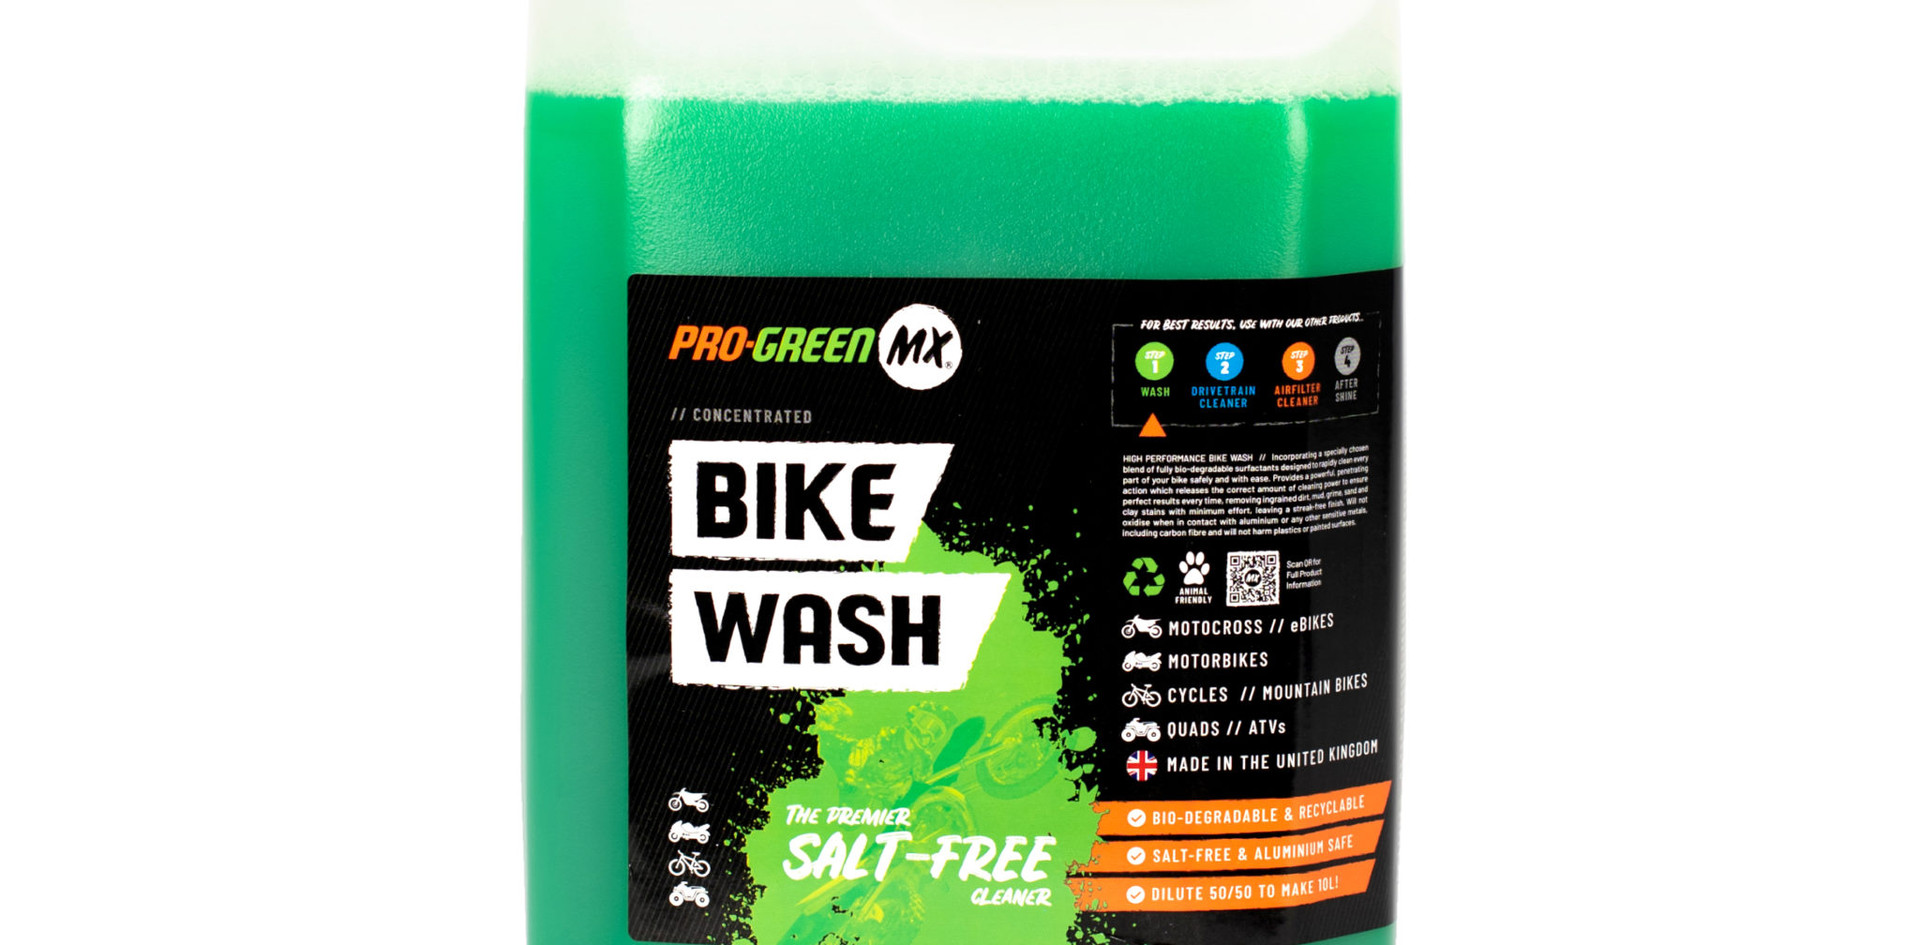 Pro Green MX 5L Concentrated Bike Wash Refill